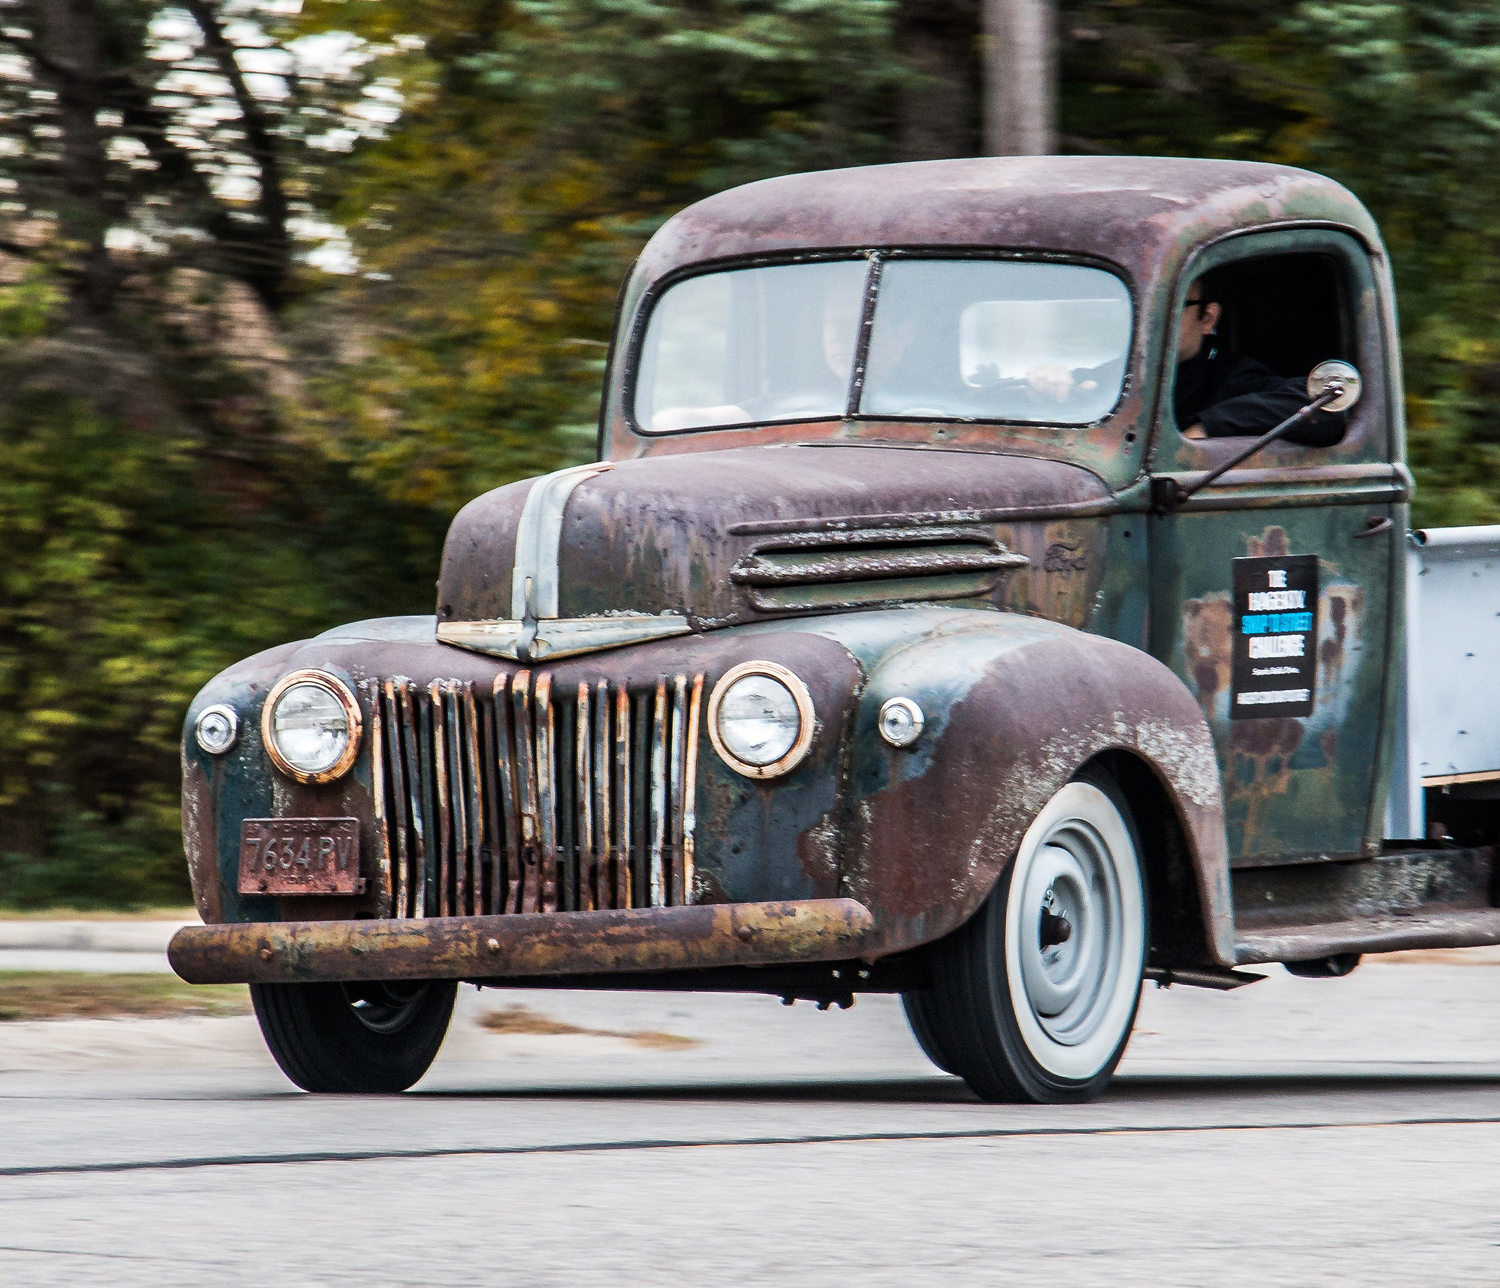 Hagerty crew resurrects old Ford pickup truck from spare parts ...